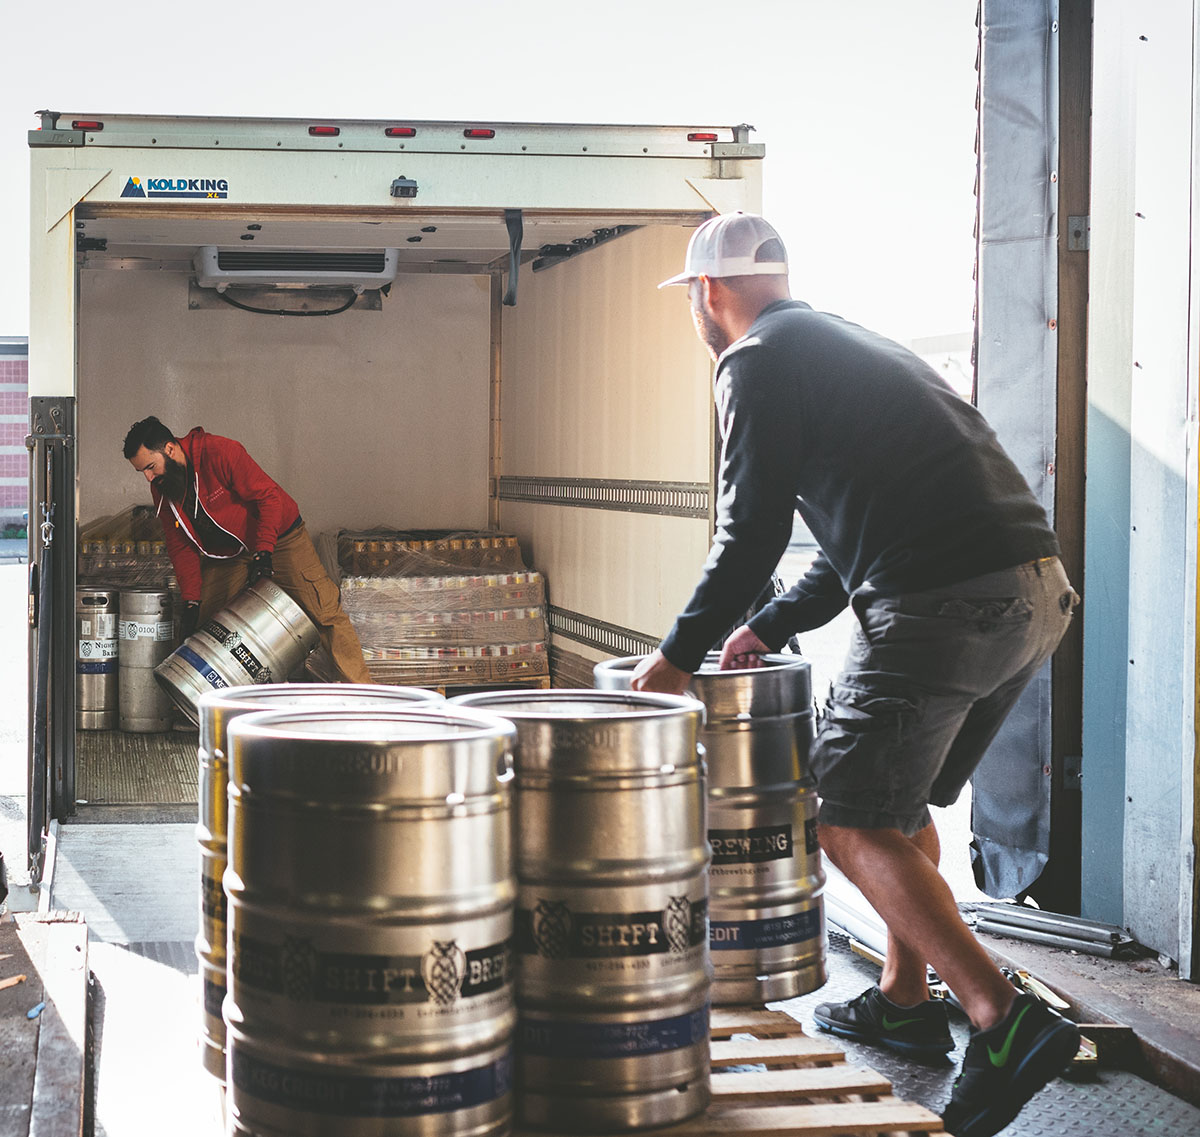 Night Shift warehouse assistant Marlon Silvestre (L) and delivery driver Justin Dirienzo loading kegs into a refrigerated box truck